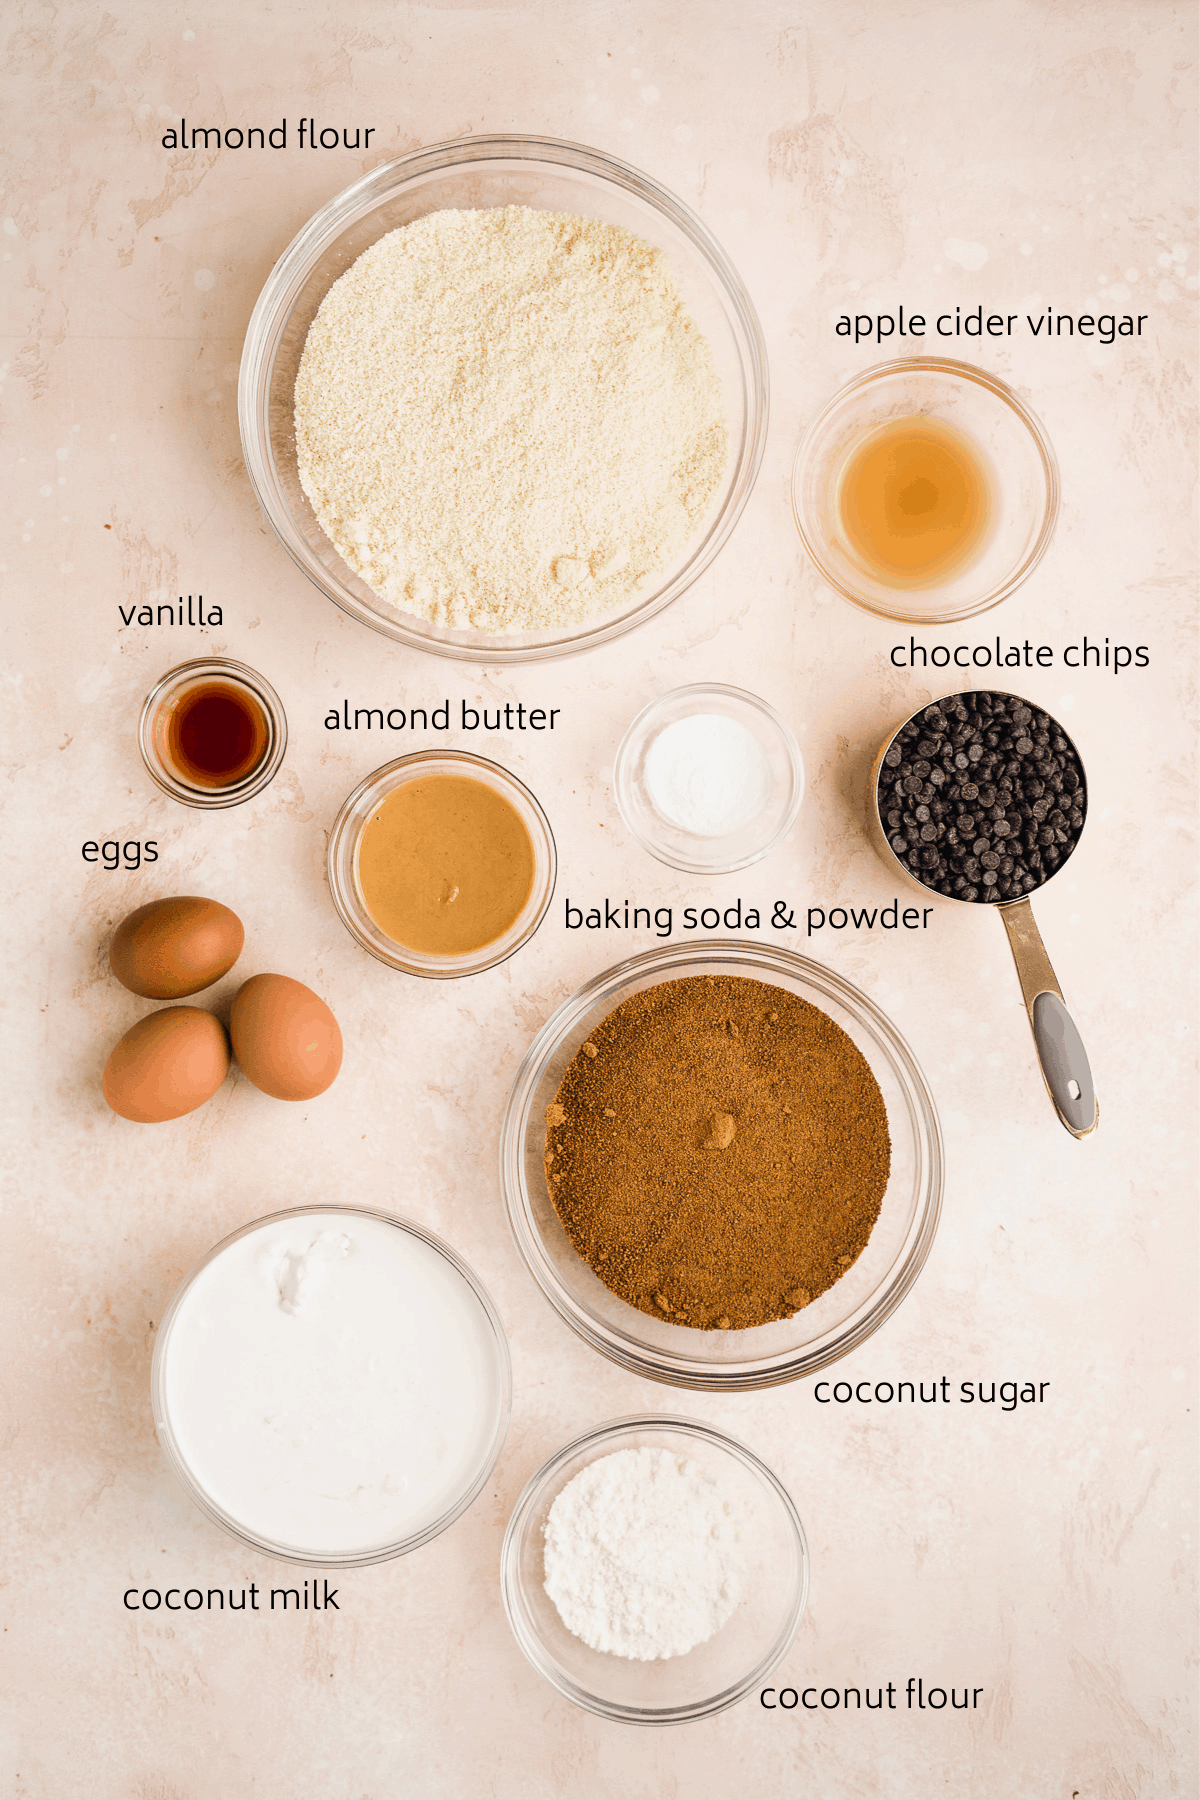 Ingredients list for cookie dough cake on pink surface.